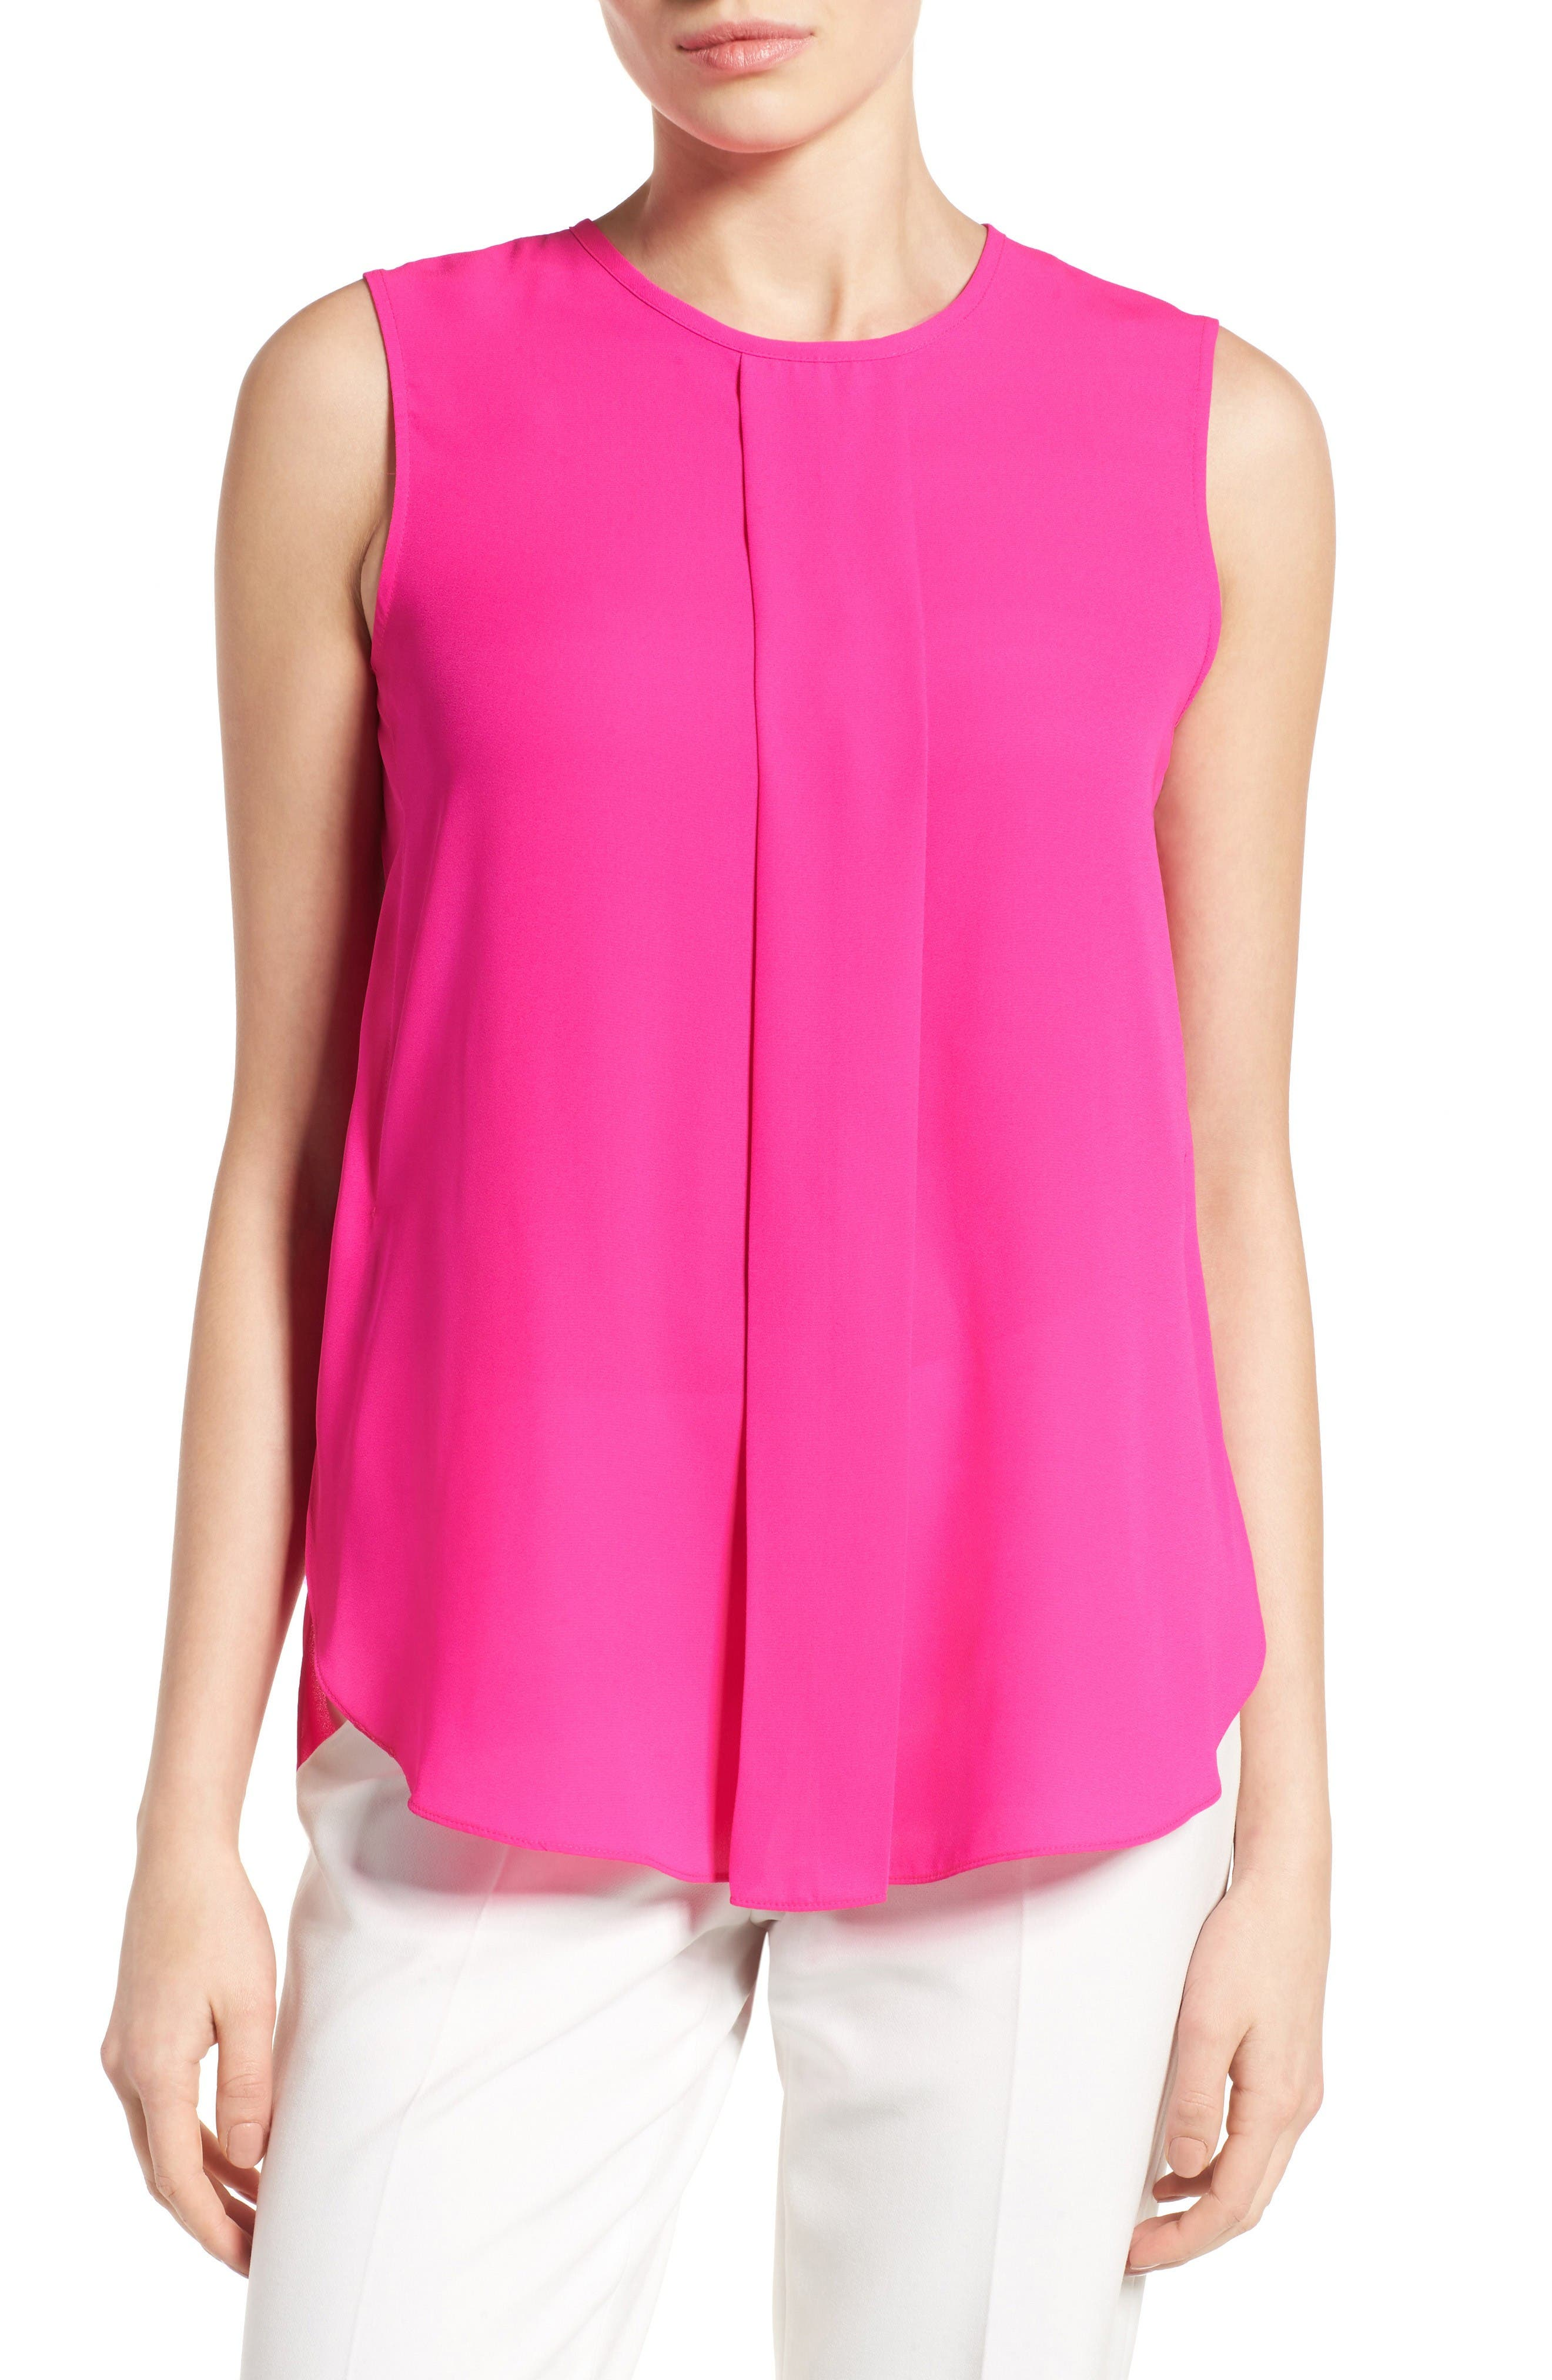 Main Image - Vince Camuto Center Pleat Sleeveless Blouse